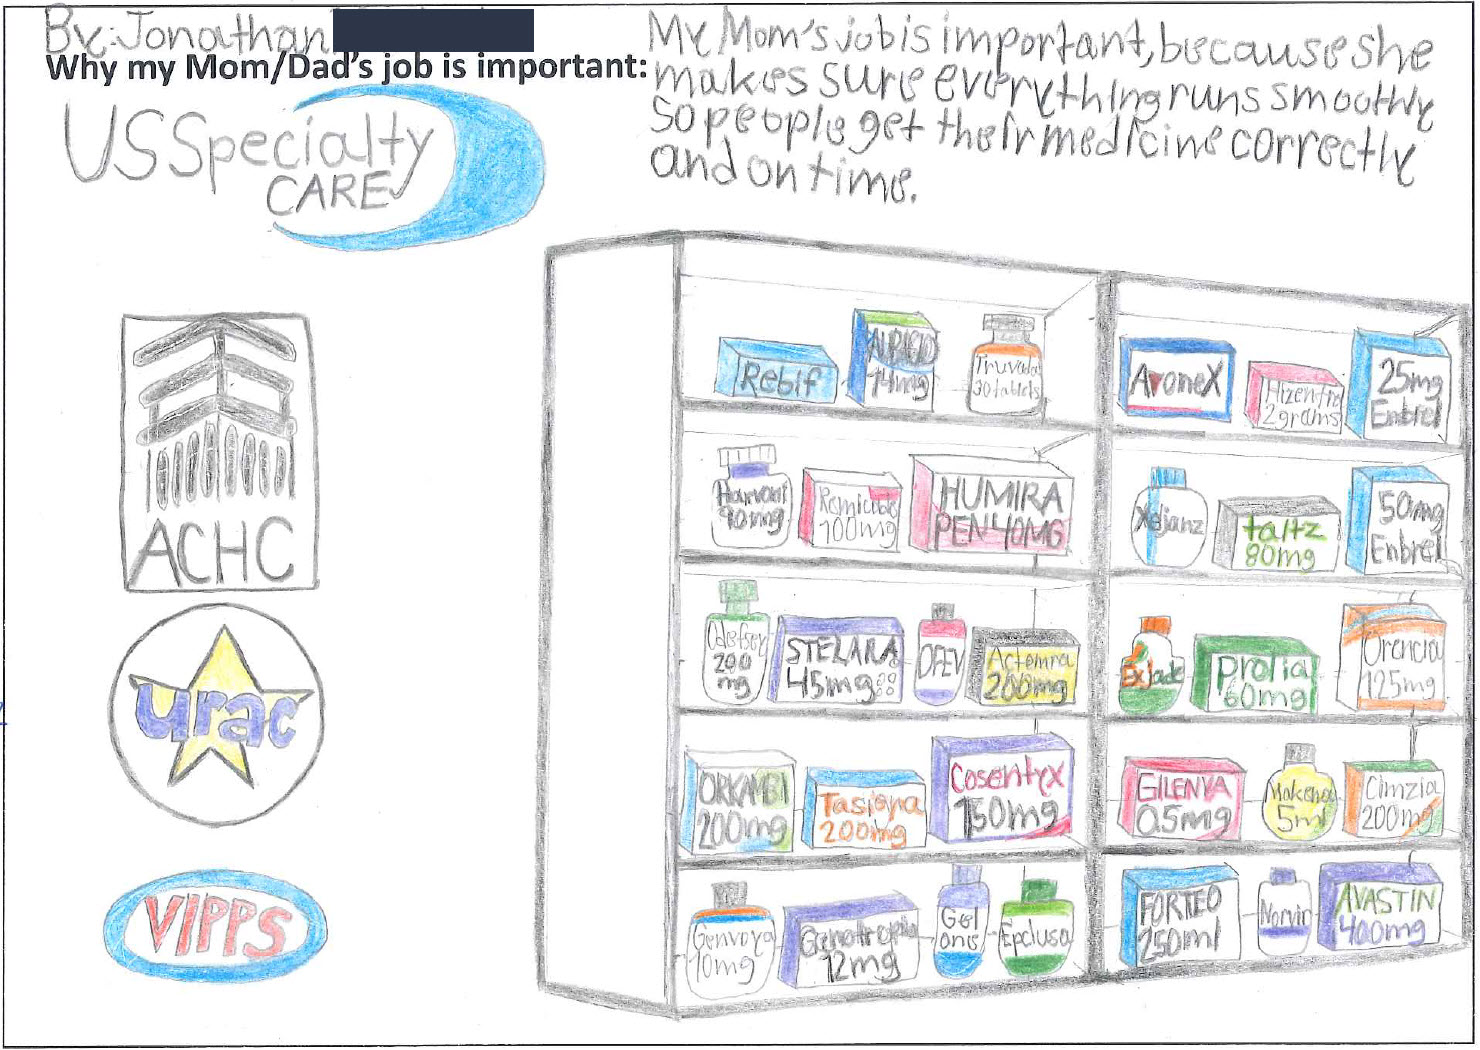 drawing by a child of pharmacy shelves displaying a variety of specialty medications with accreditation logos